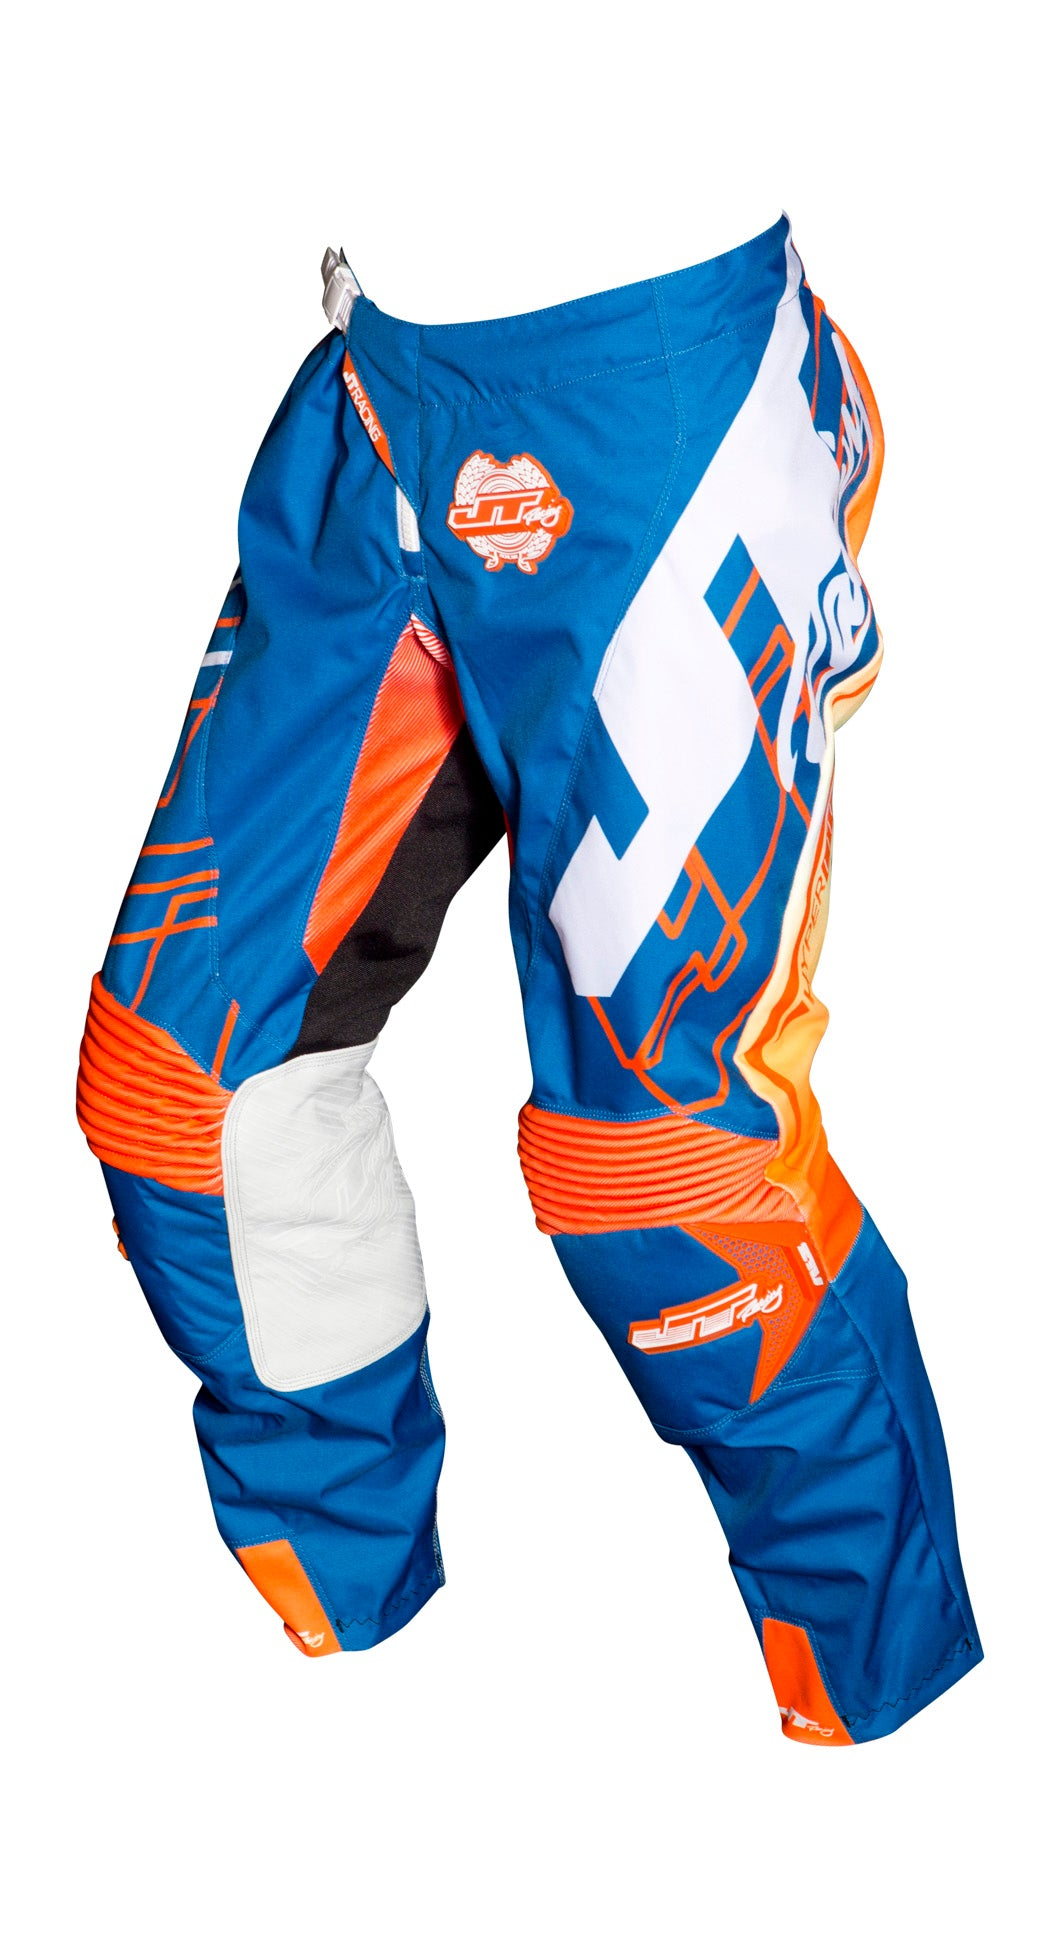 JT RACING USA-2018 Hyperlite Shuffle Pants, Blue/Fluro Orange/White